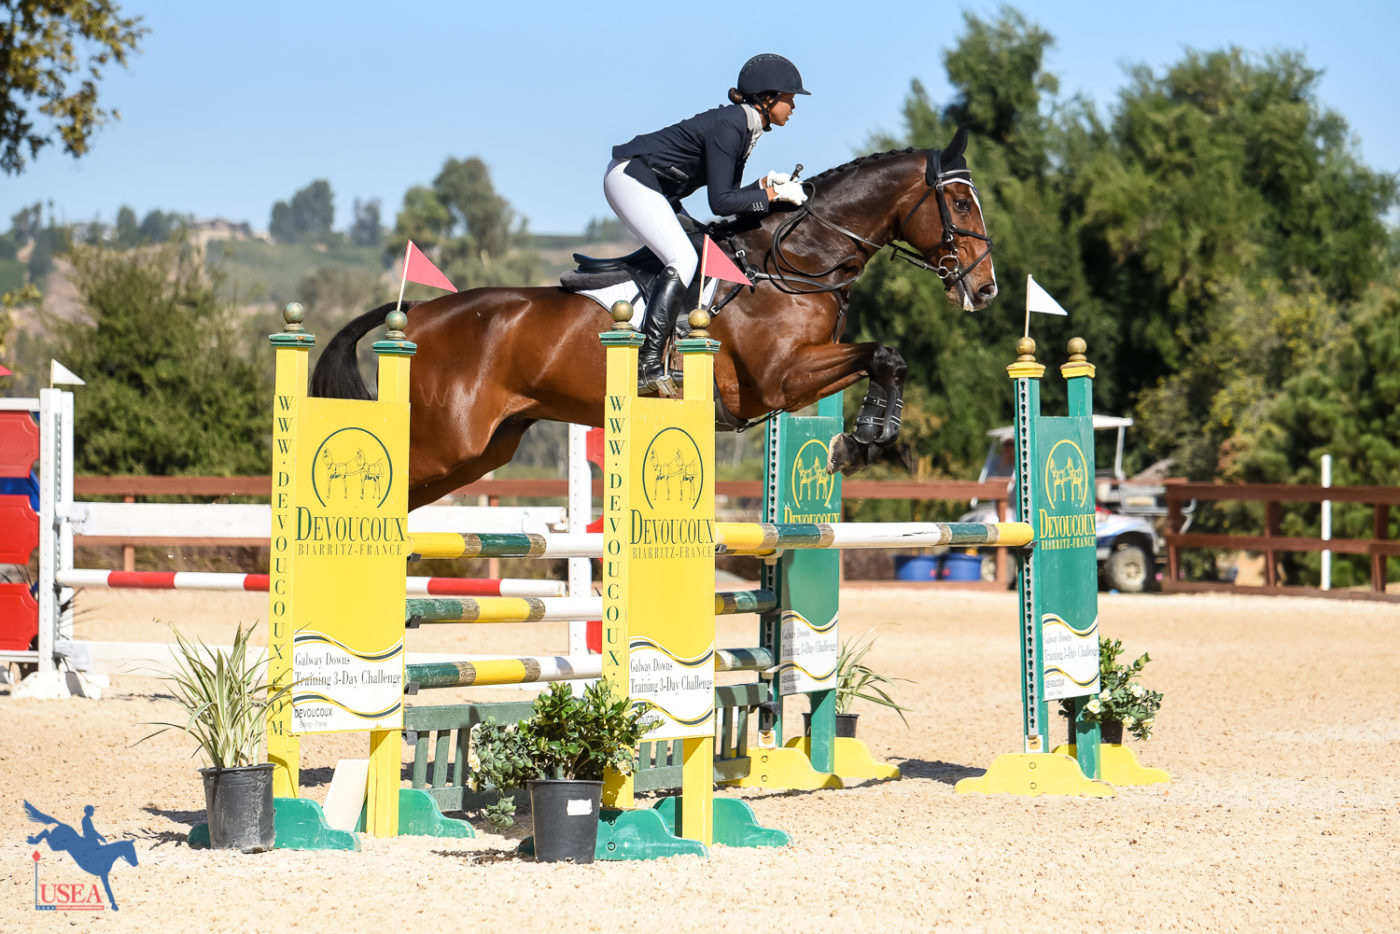 4th - Kaylawna Smith-Cook and Passepartout - 36.2